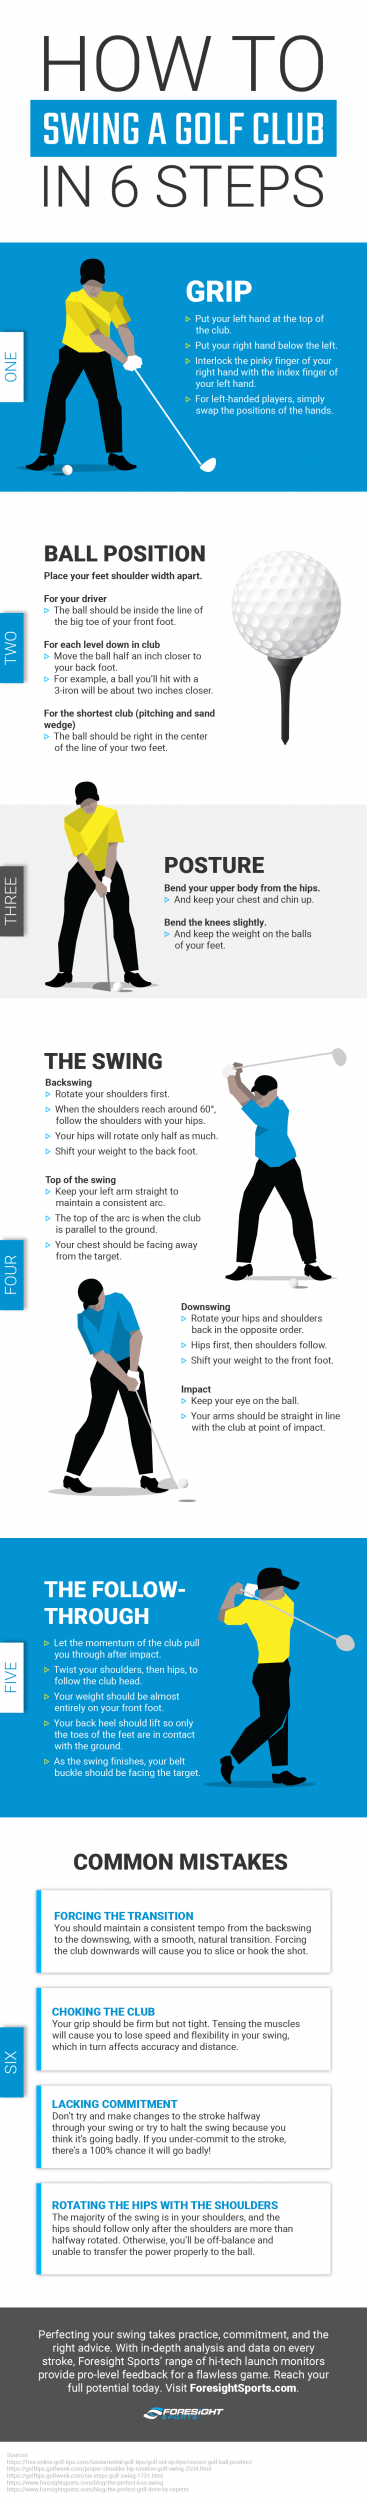 how to swing a golf club in 6 steps infographic